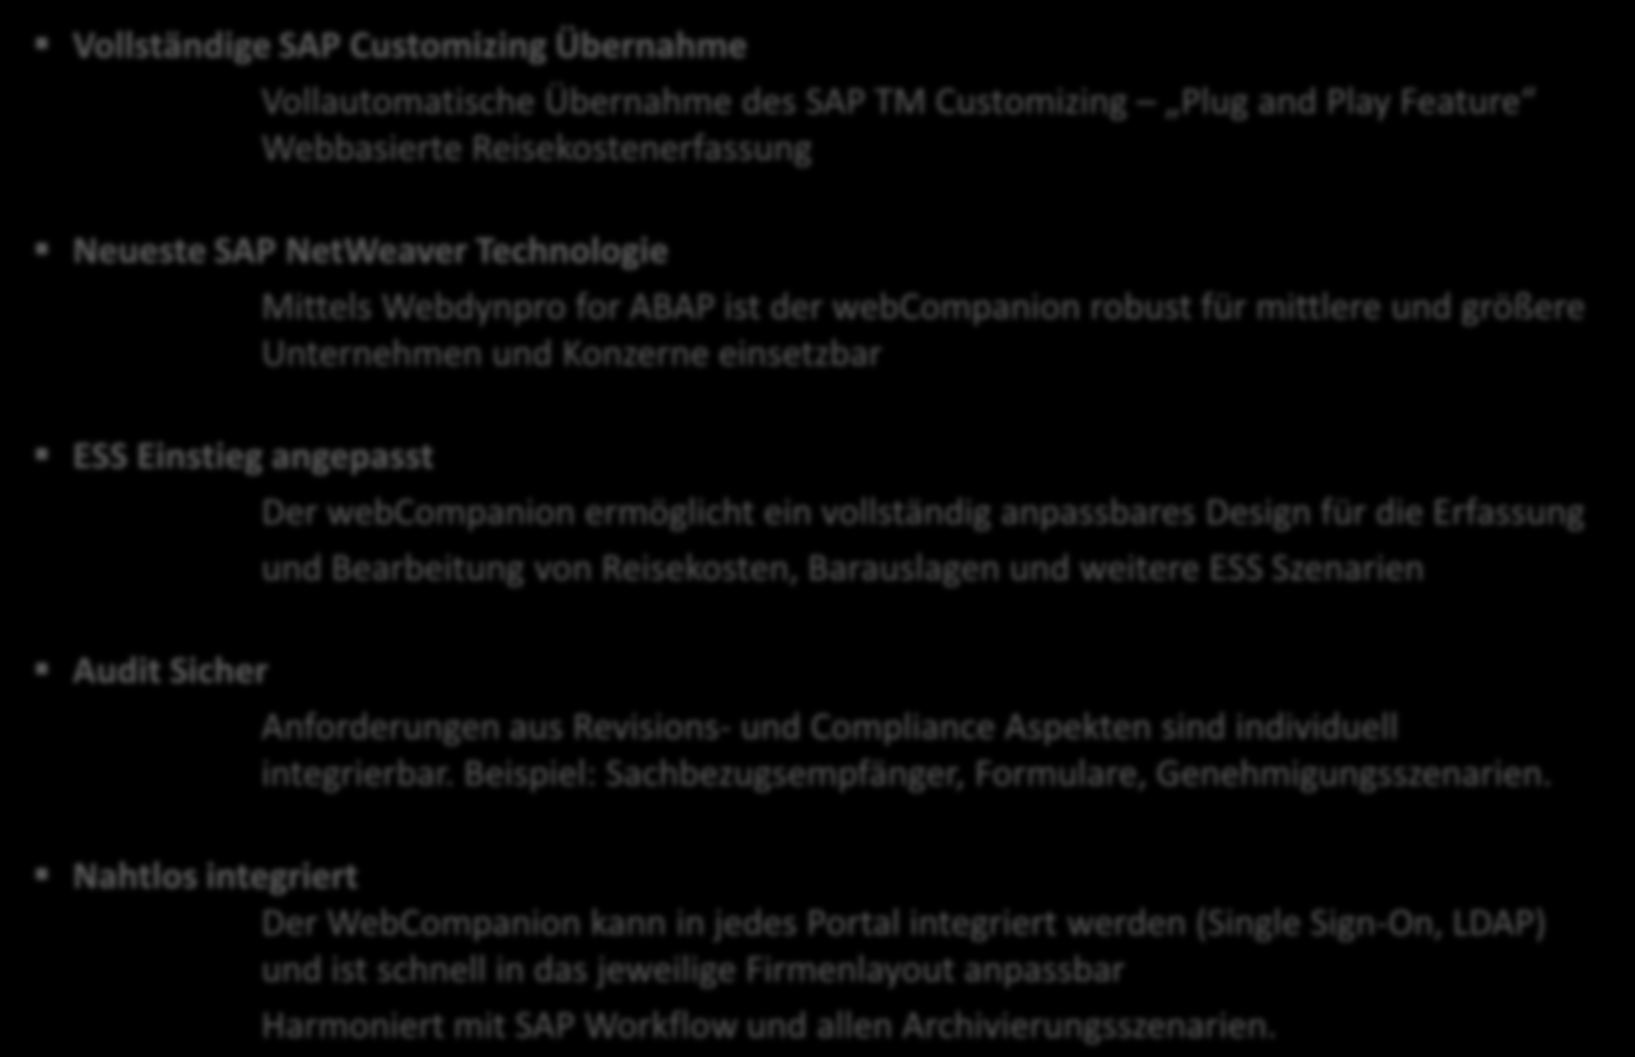 Vorteile des webcompanions Vollständige SAP Customizing Übernahme Vollautomatische Übernahme des SAP TM Customizing Plug and Play Feature Webbasierte Reisekostenerfassung Neueste SAP NetWeaver